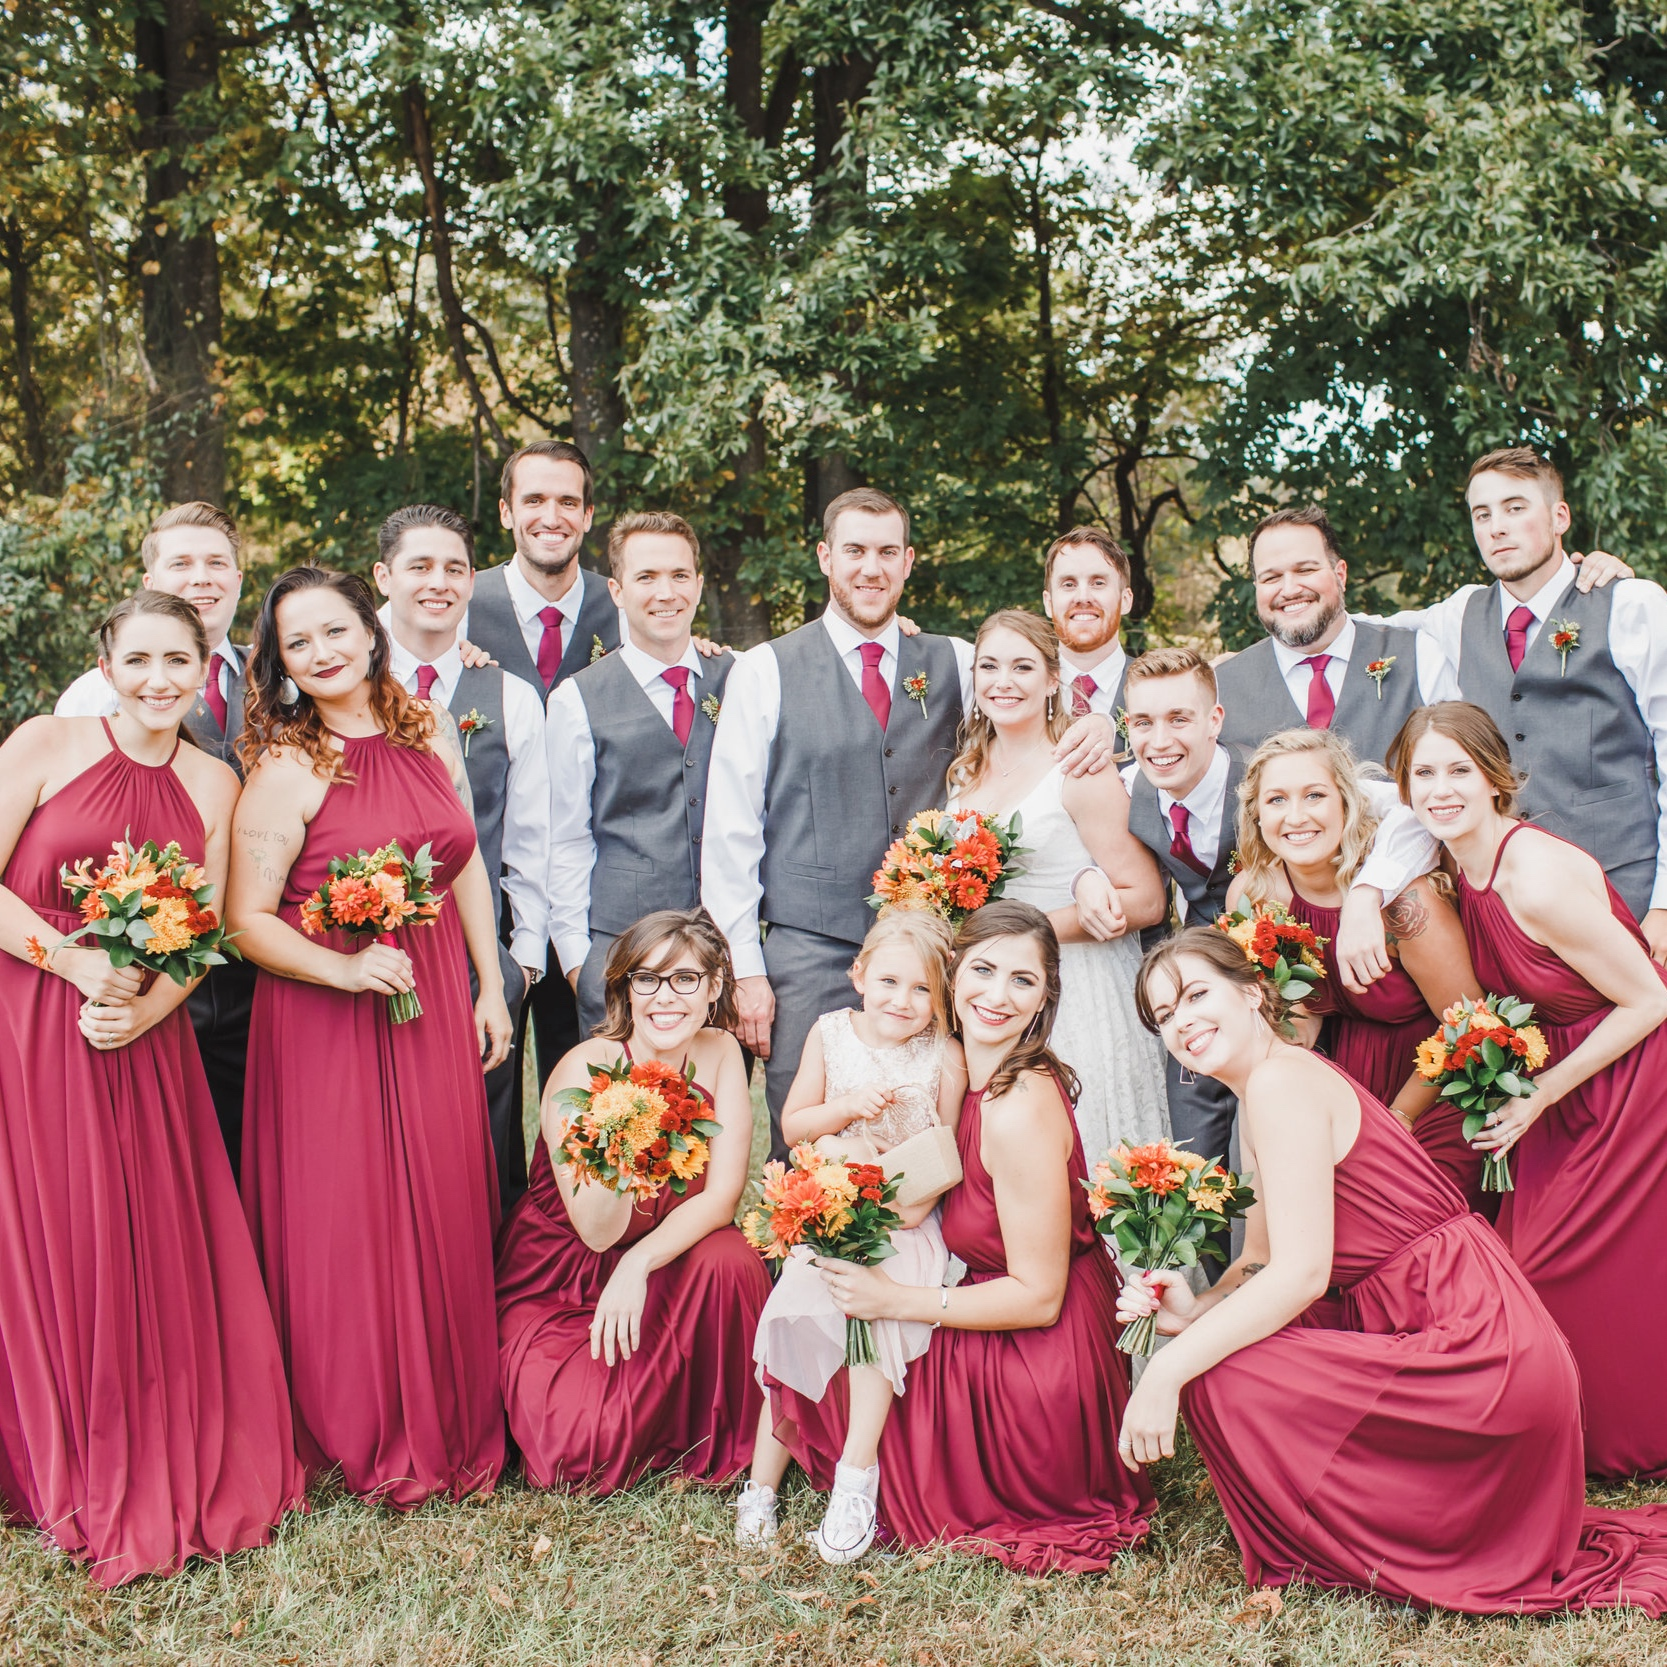 Fling - Virginia Wedding Photographer - Photography by Amy Nicole-246-29.jpg